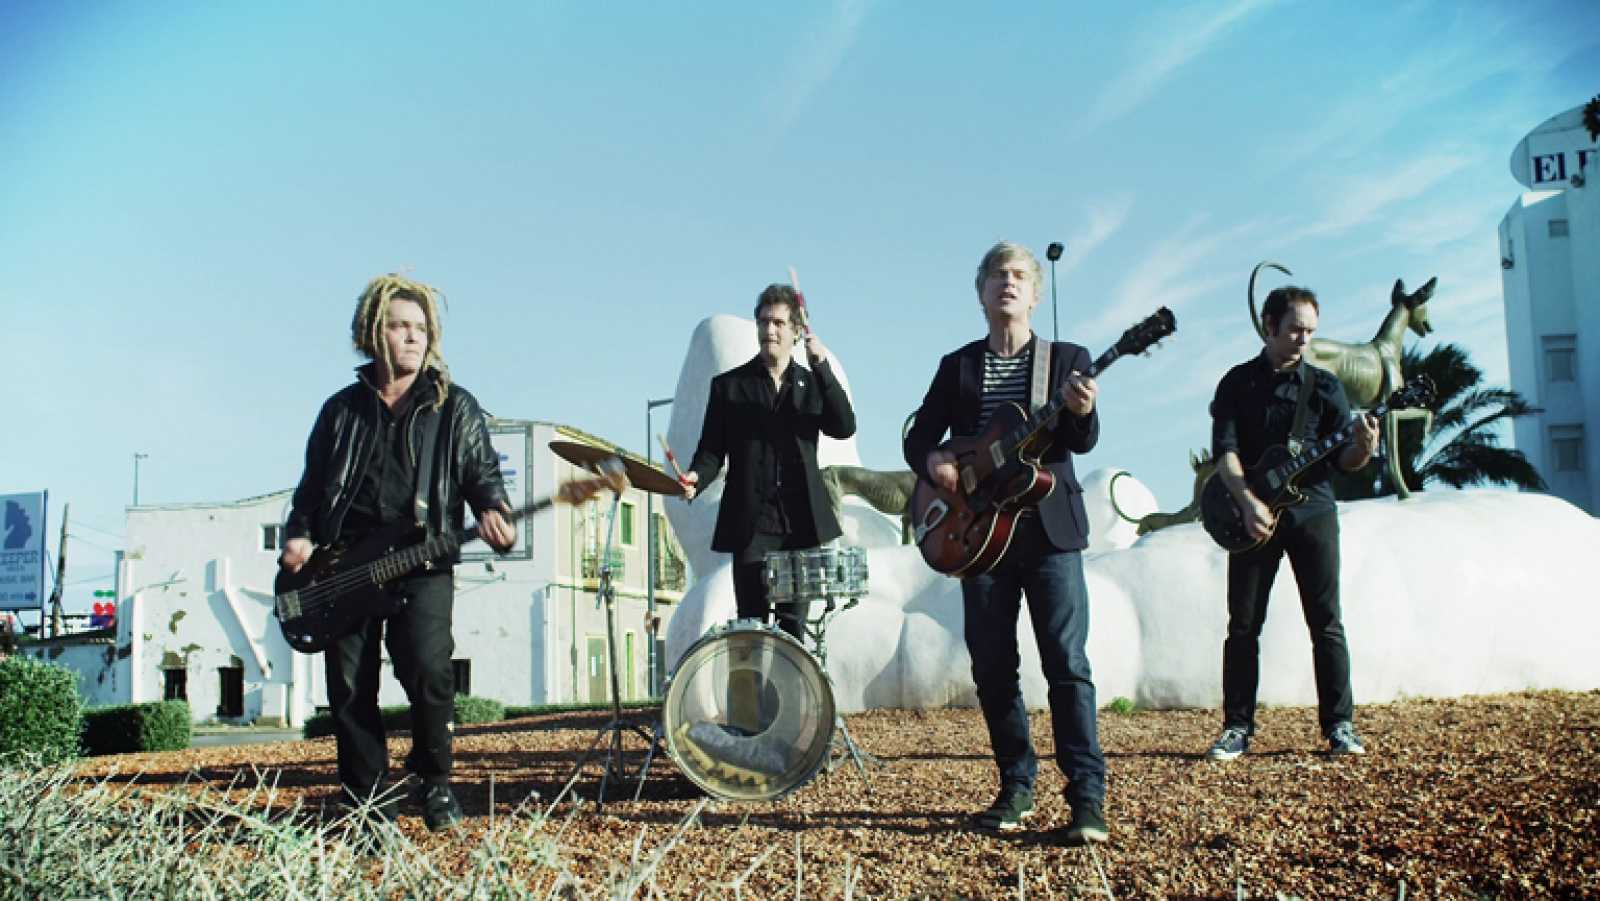 Nada Surf - Waiting For Something - Ver ahora